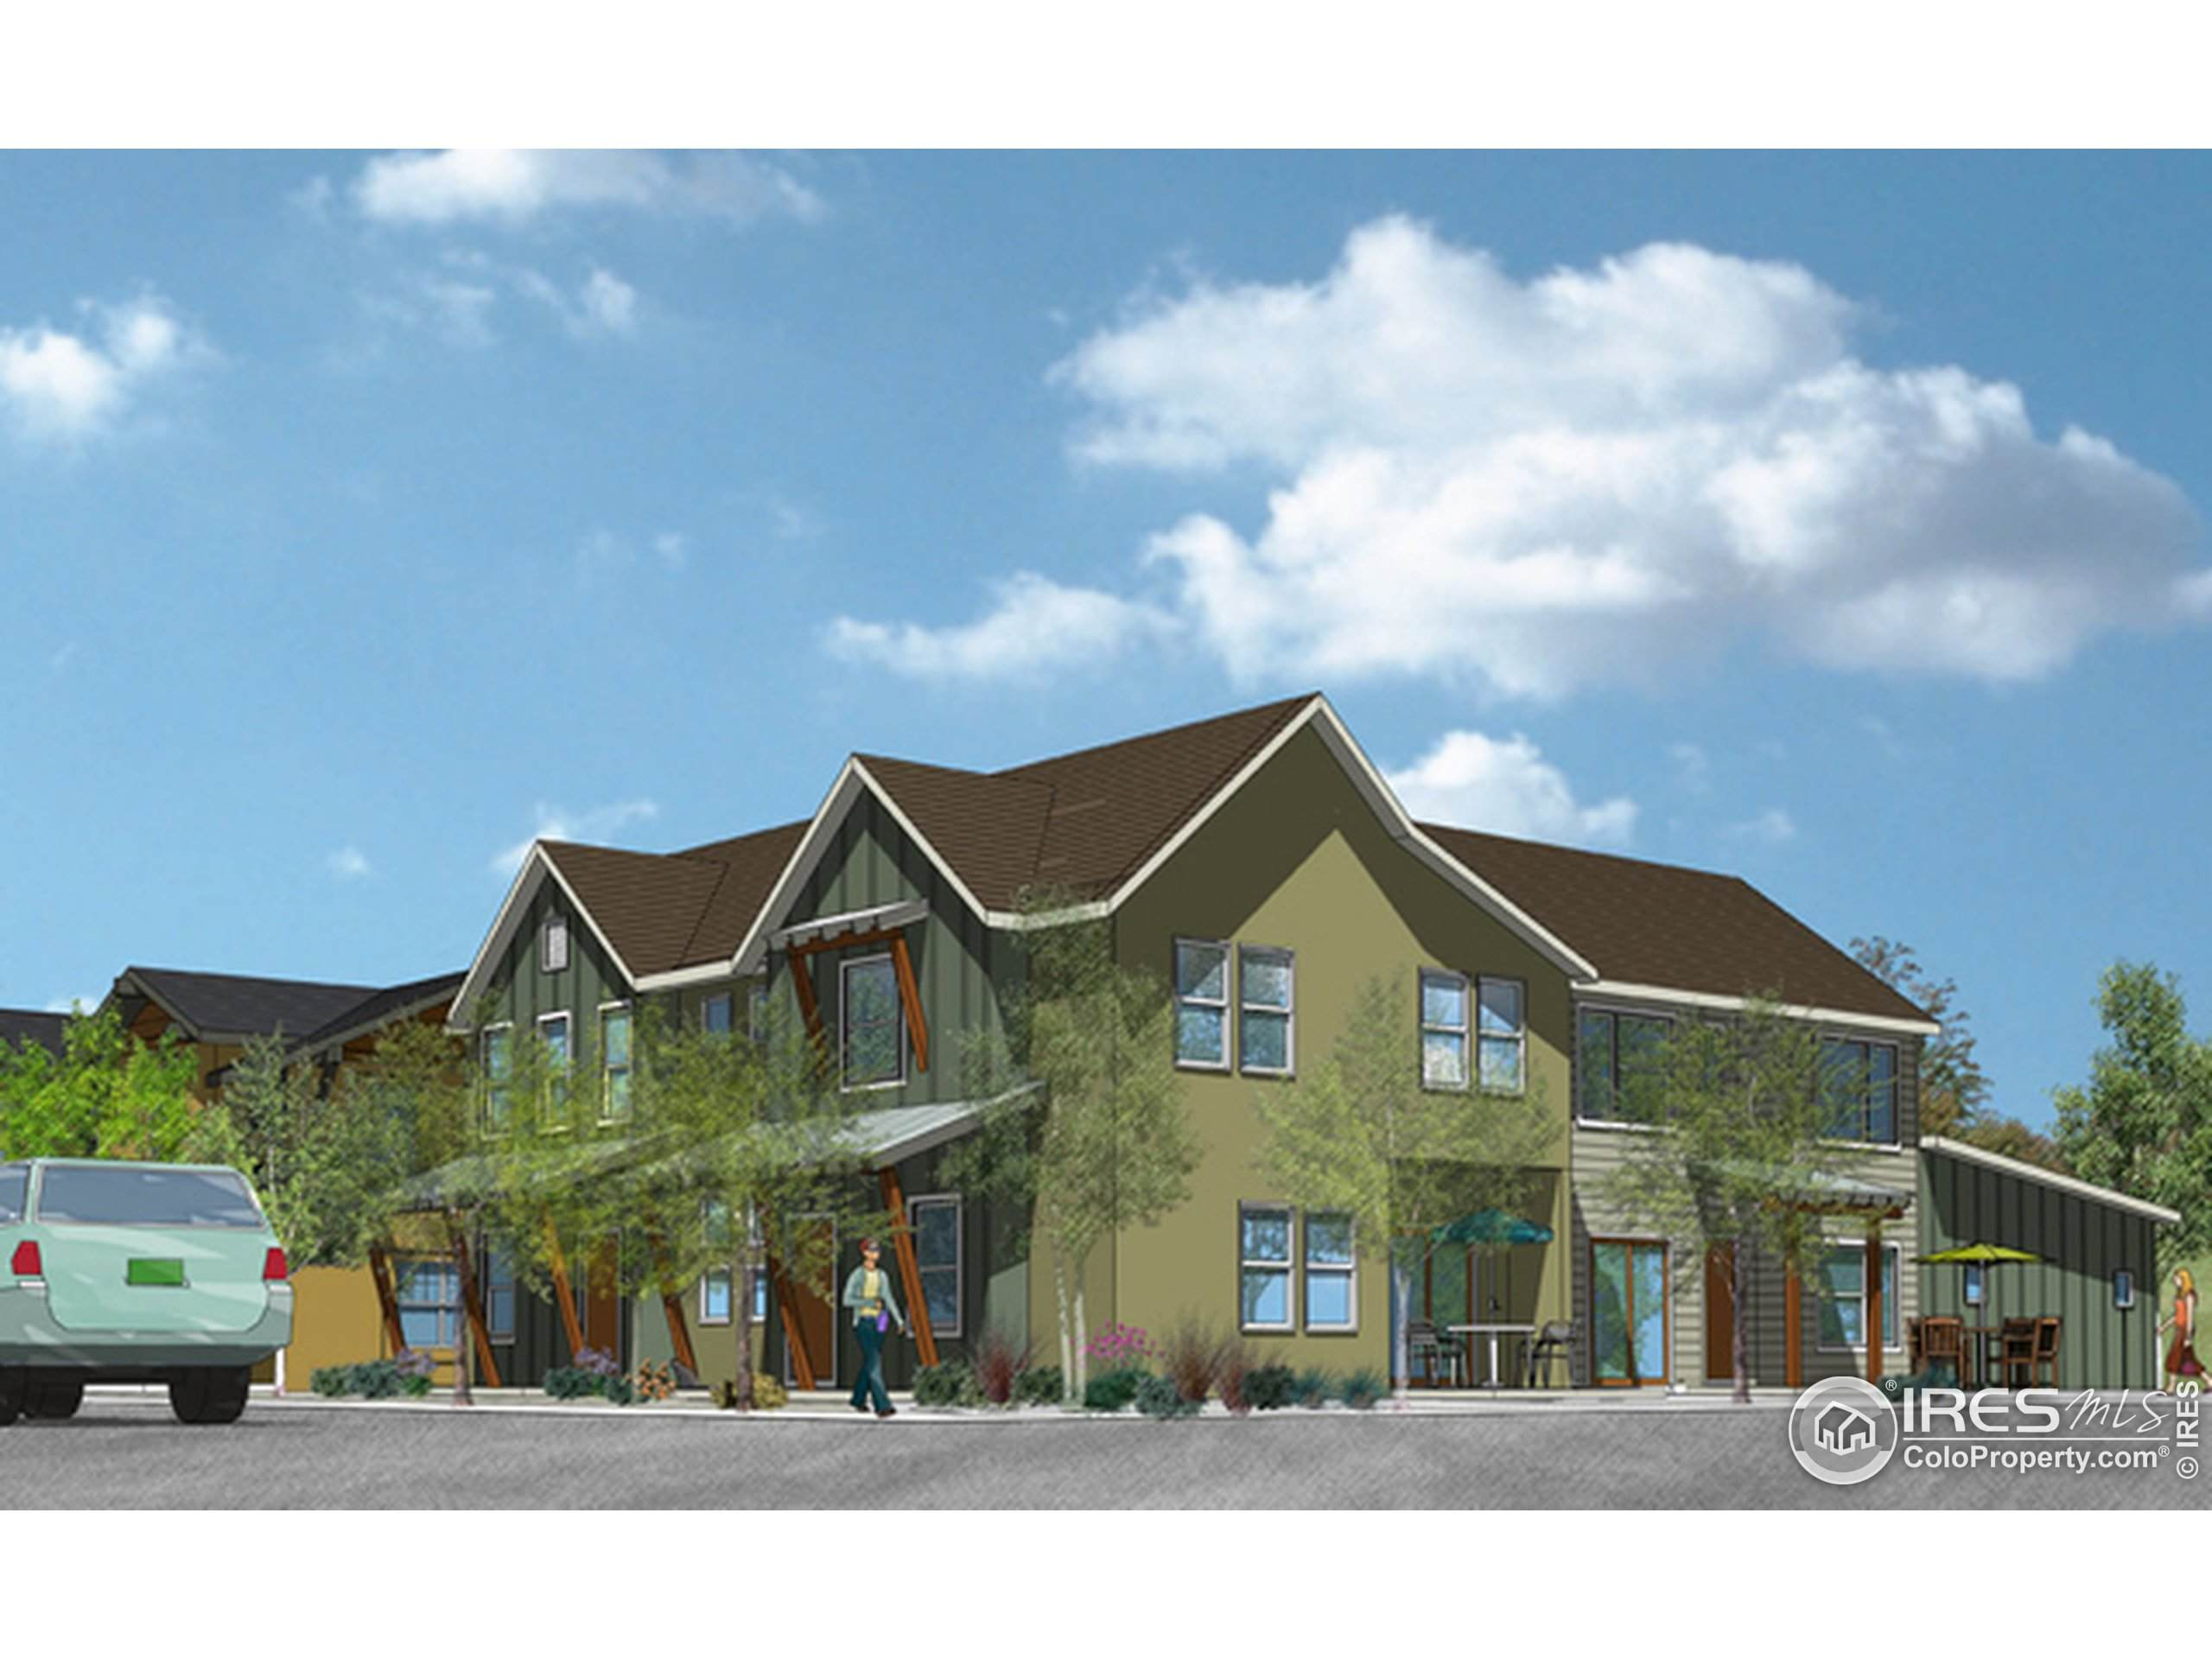 551 Bald Mountain Dr, Livermore, CO 80536 (MLS #926314) :: RE/MAX Alliance